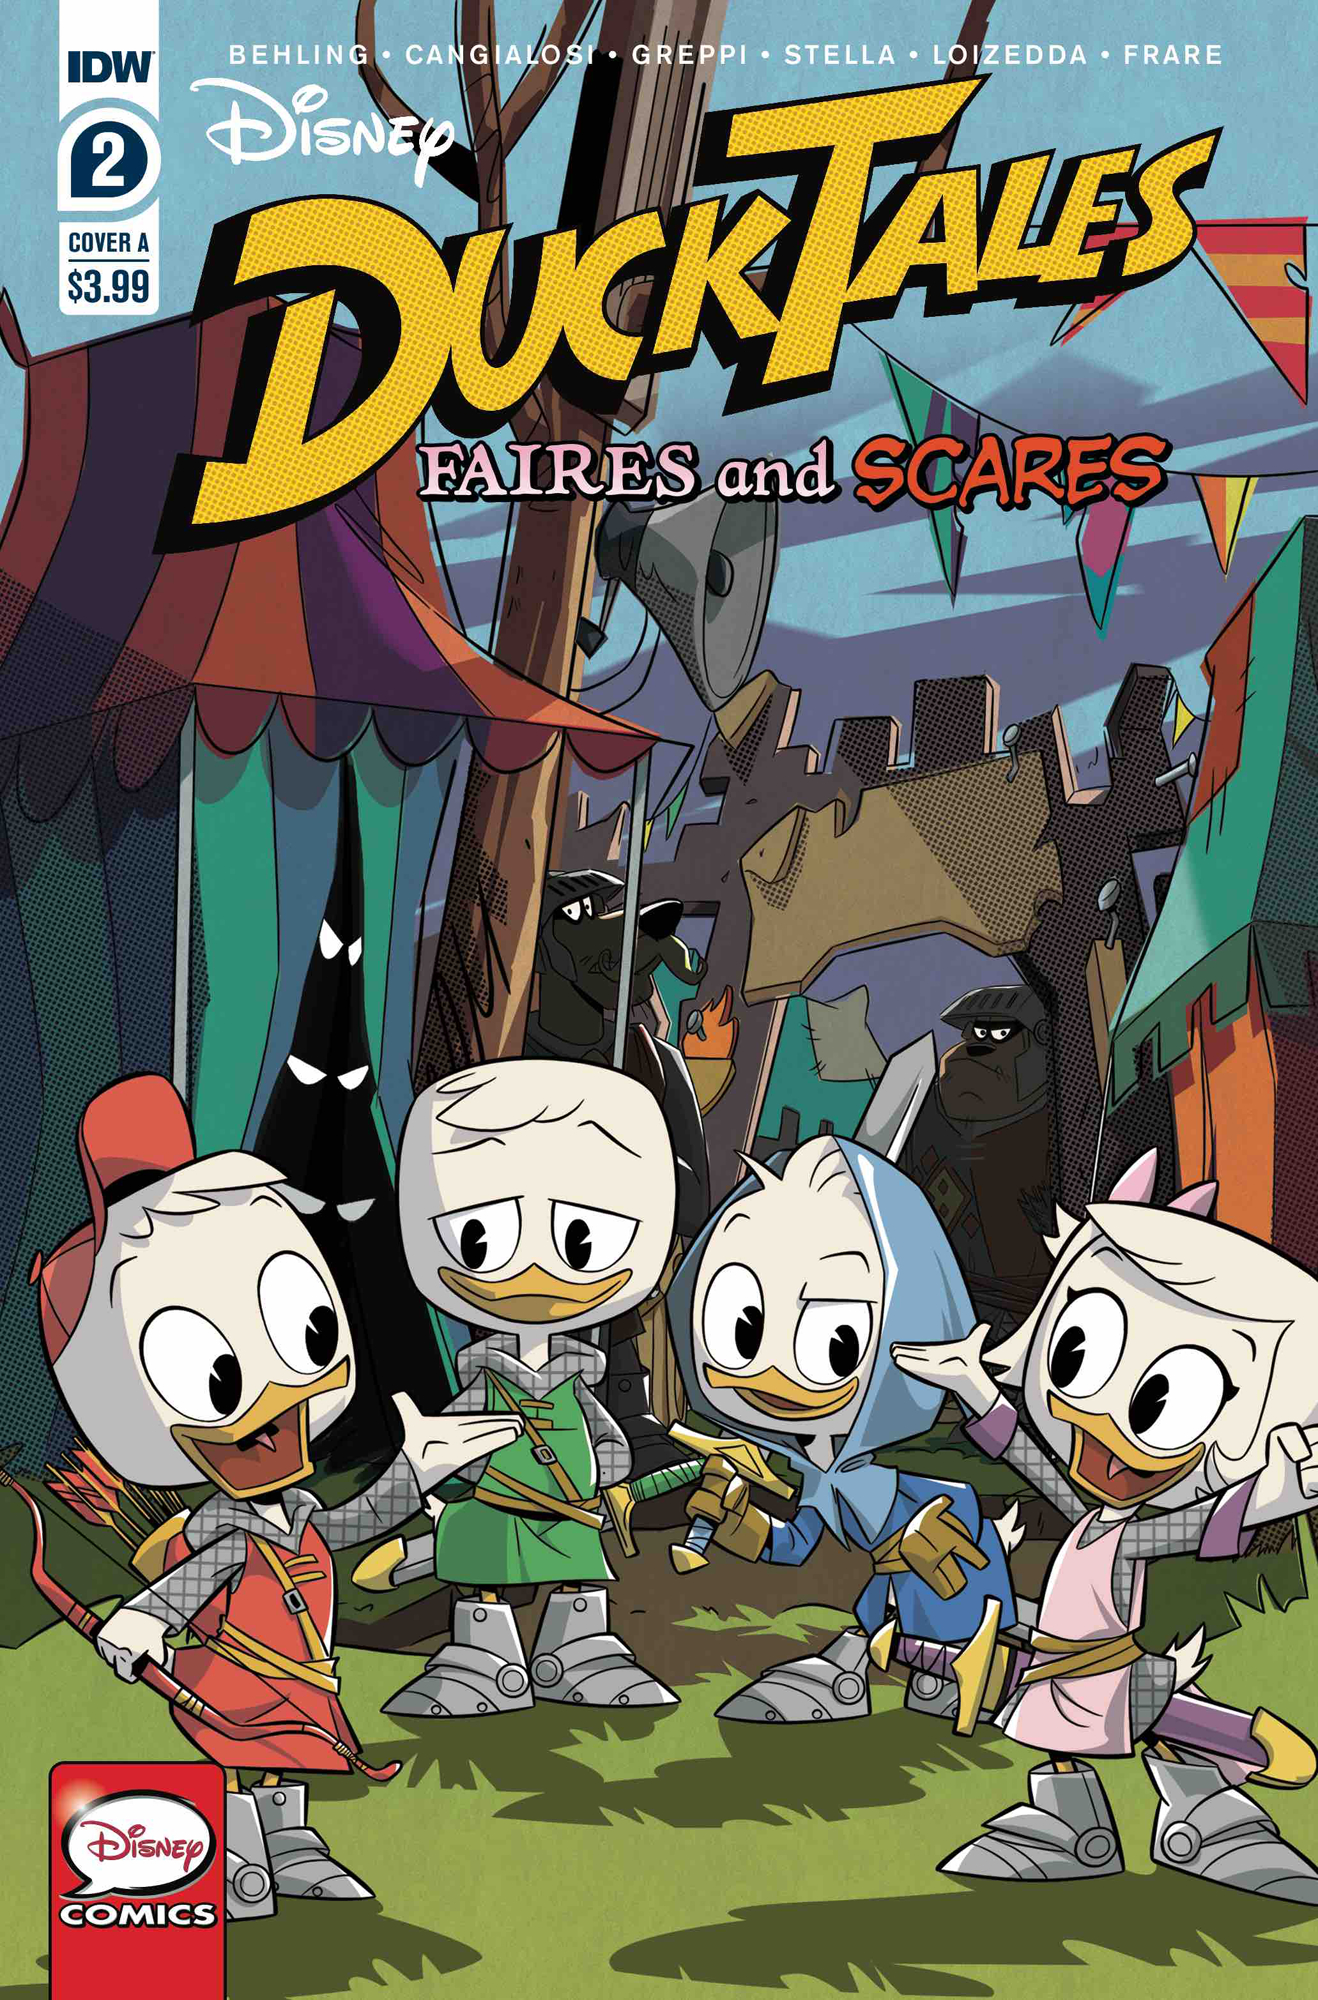 DUCKTALES FAIRES & SCARES #2 (OF 3) CVR A VARIOUS